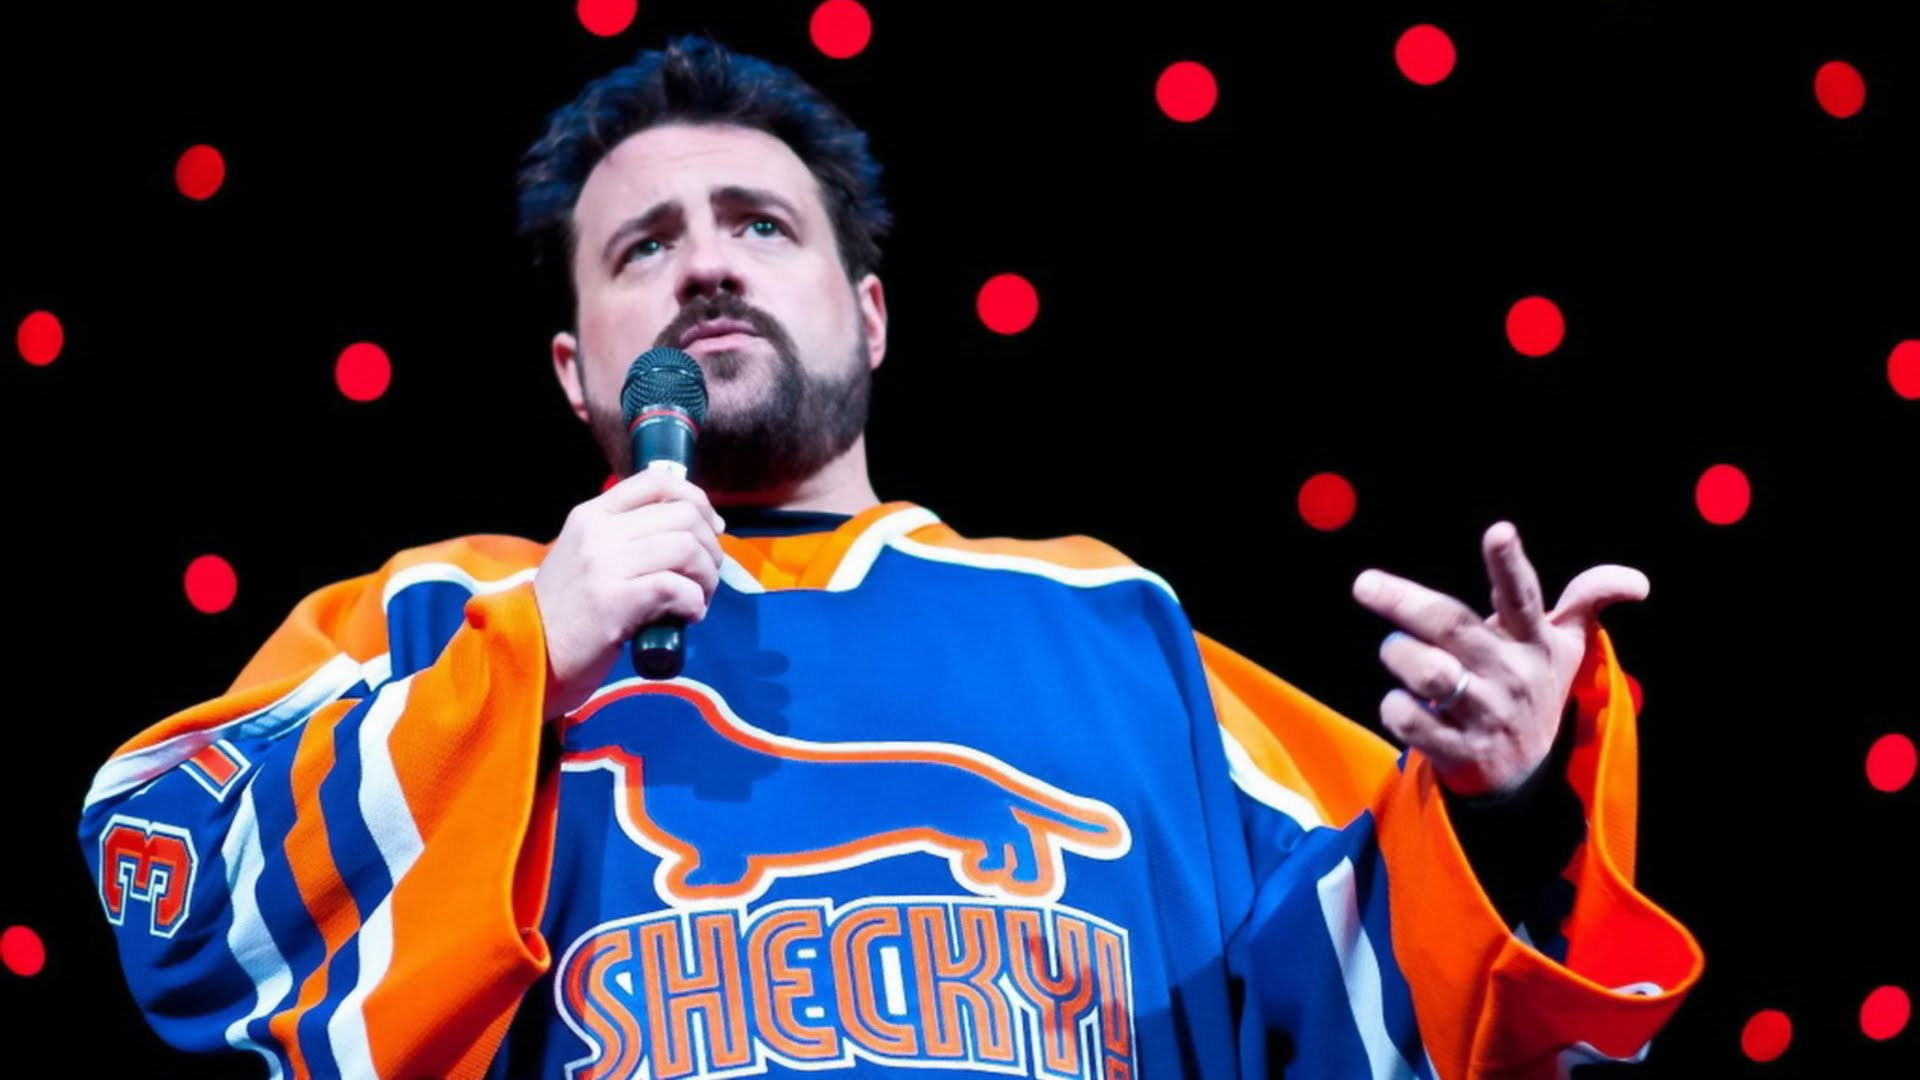 Kevin Smith: Burn in Hell (Comedy 20'12)